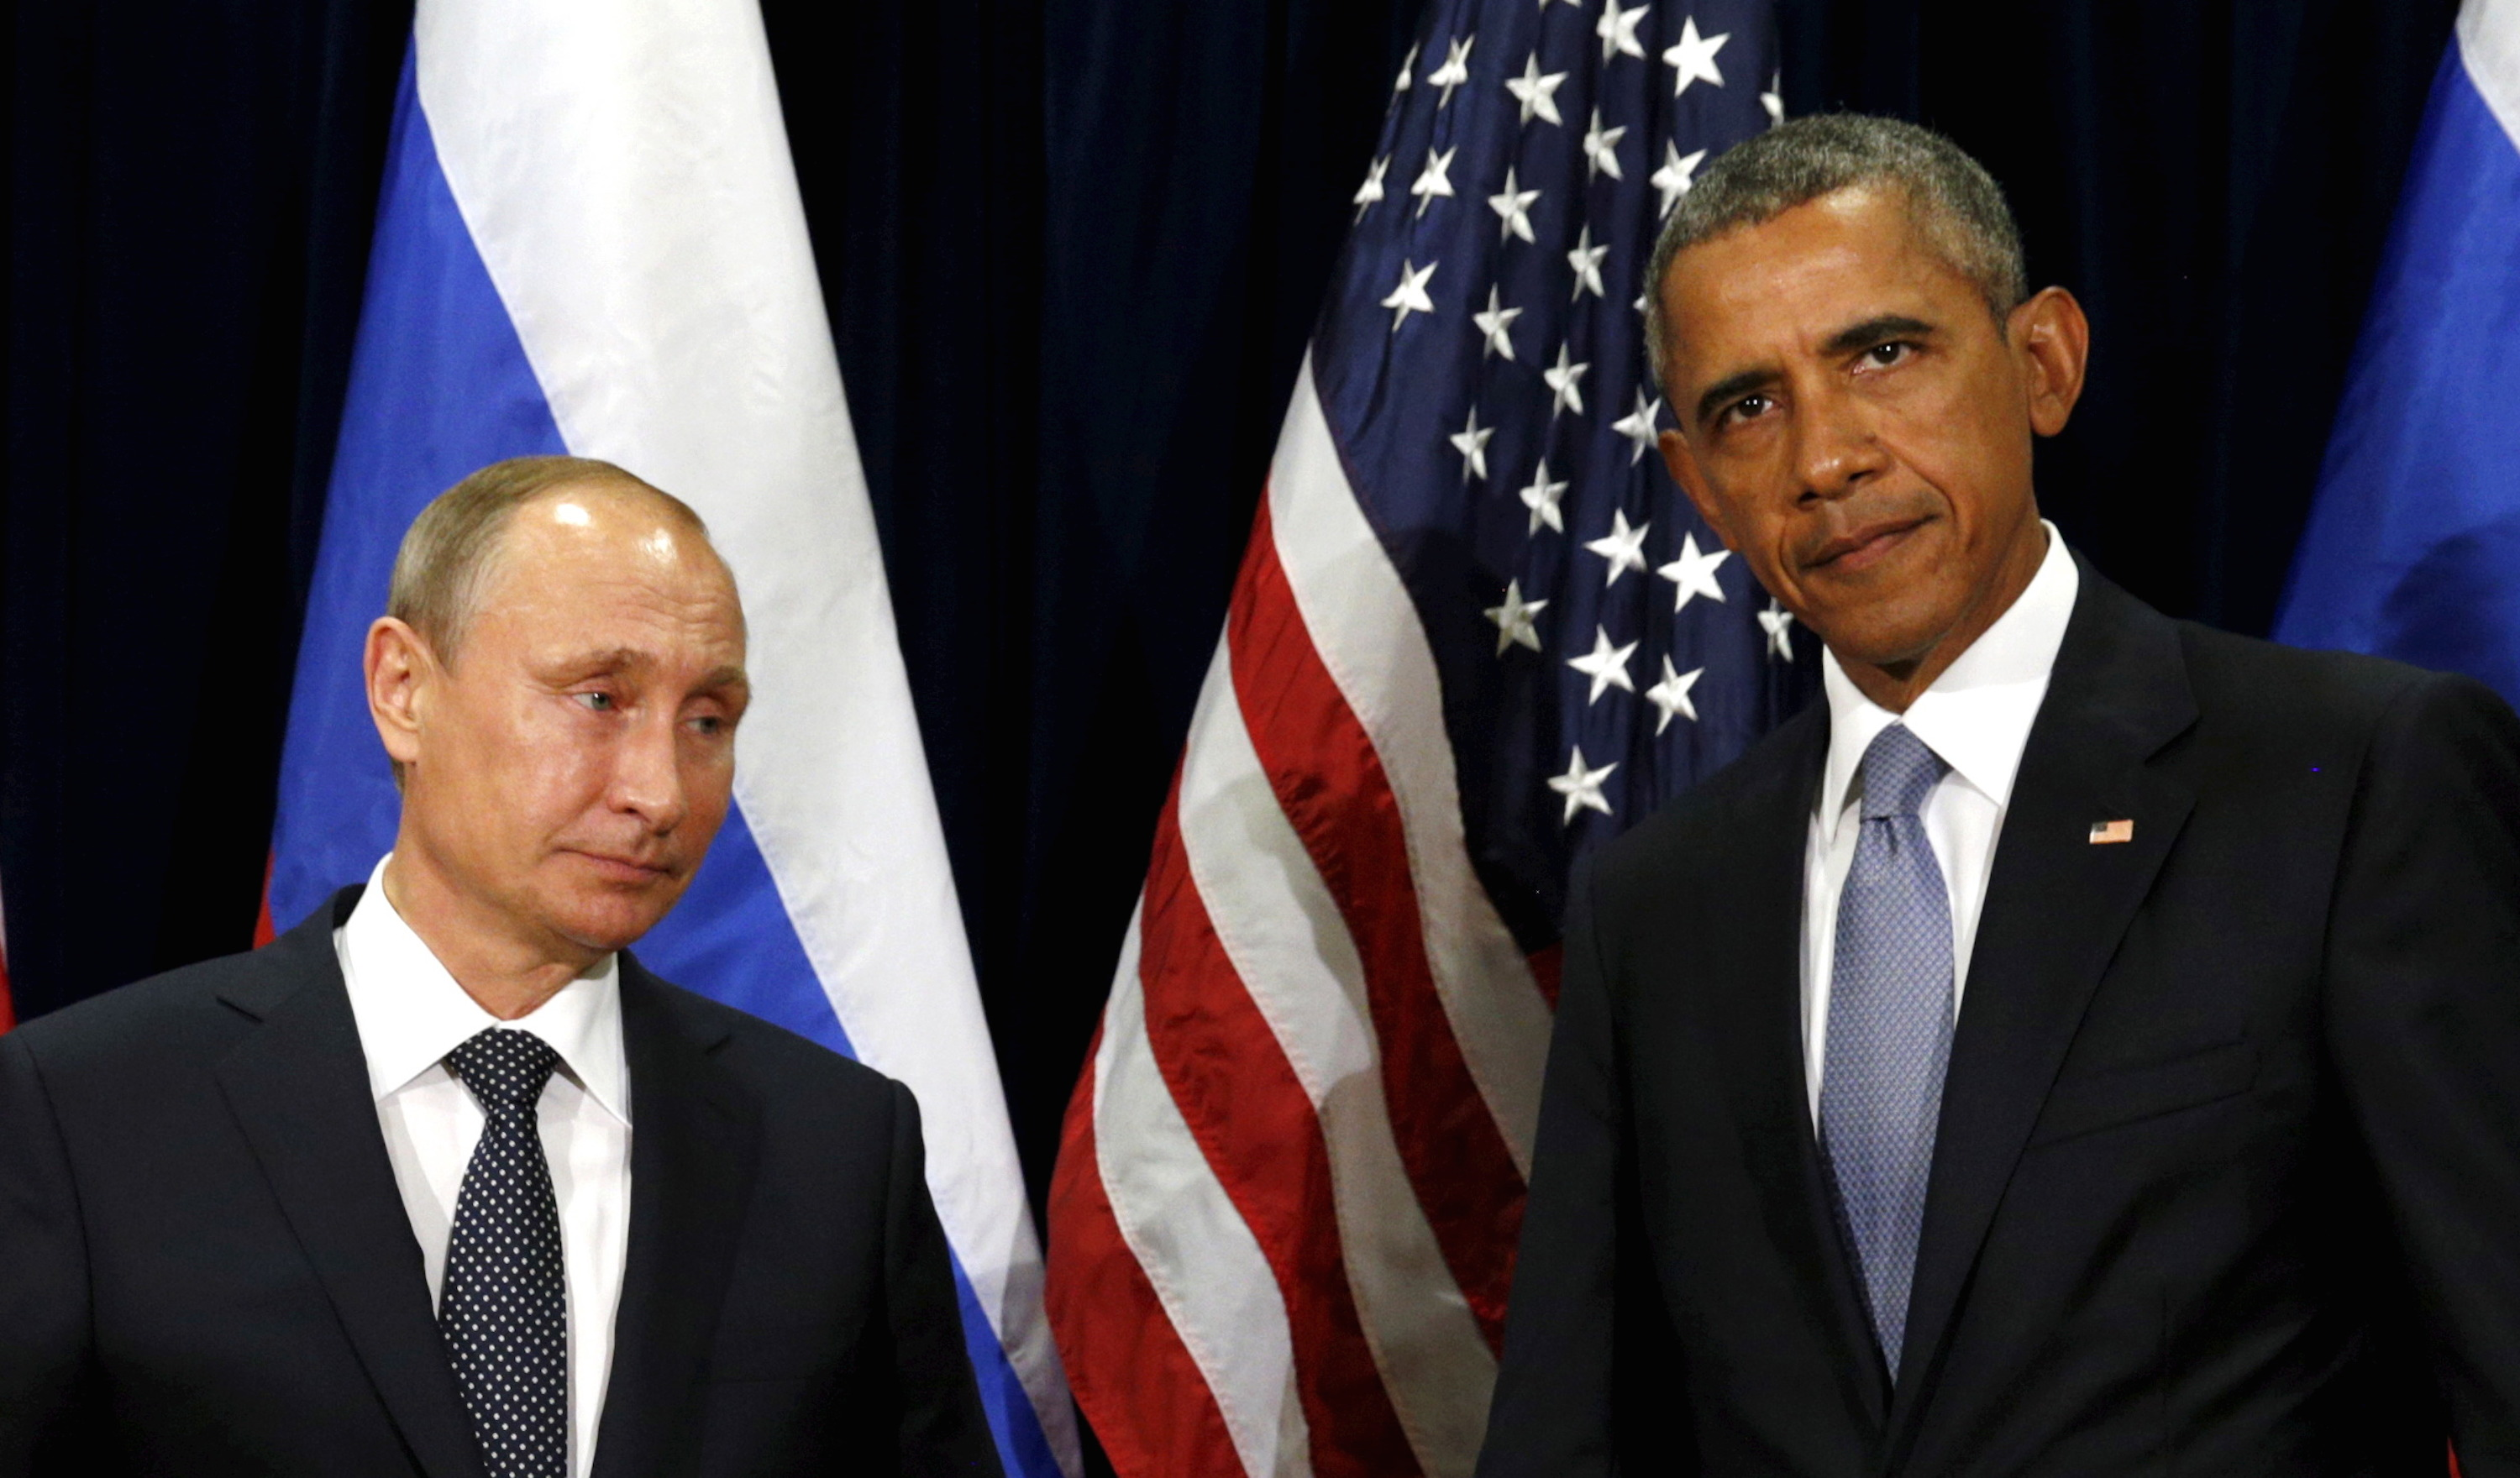 U.S. President Barack Obama and Russian President Vladimir Putin meet at the United Nations General Assembly in New York